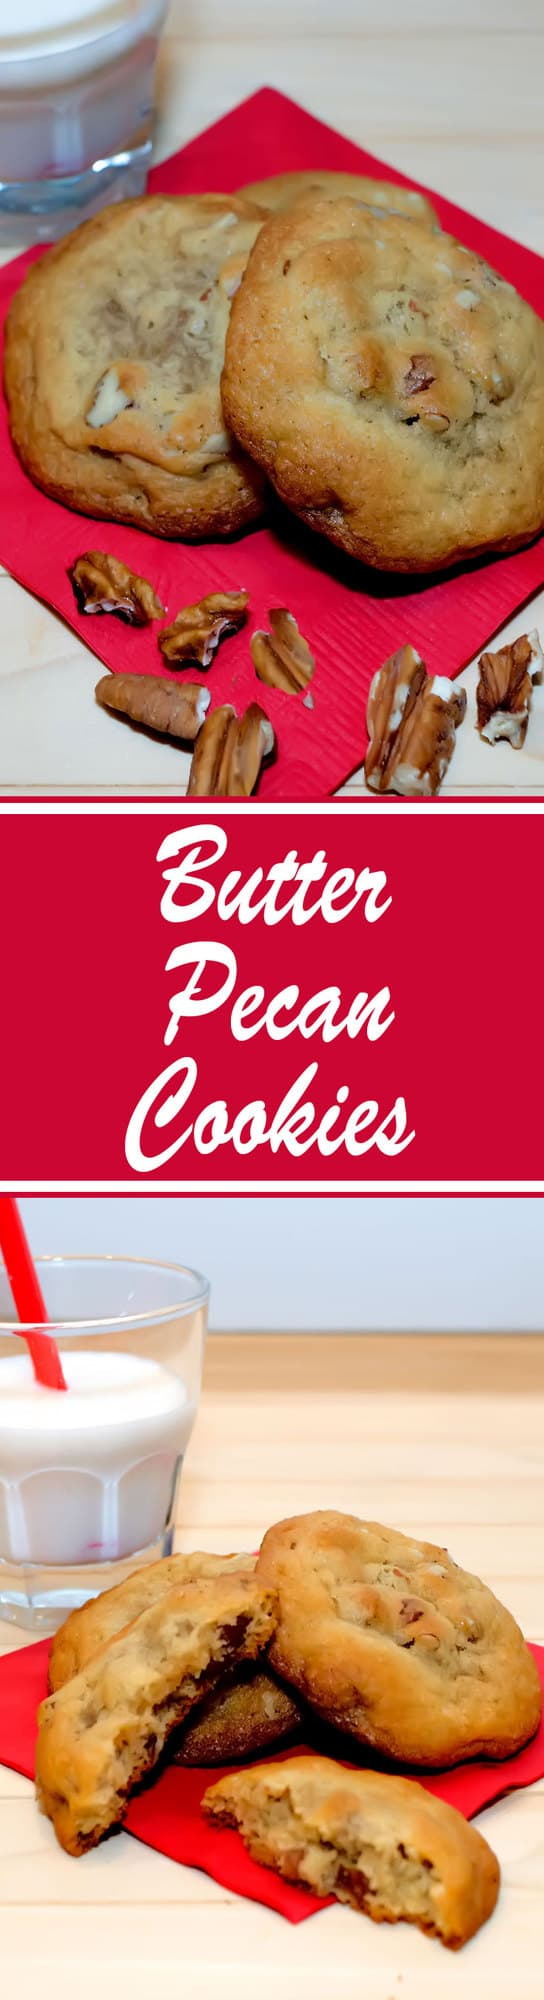 Crispy on the outside and soft in the center, these cookies are buttery rich and intensely flavored with toasted pecans.